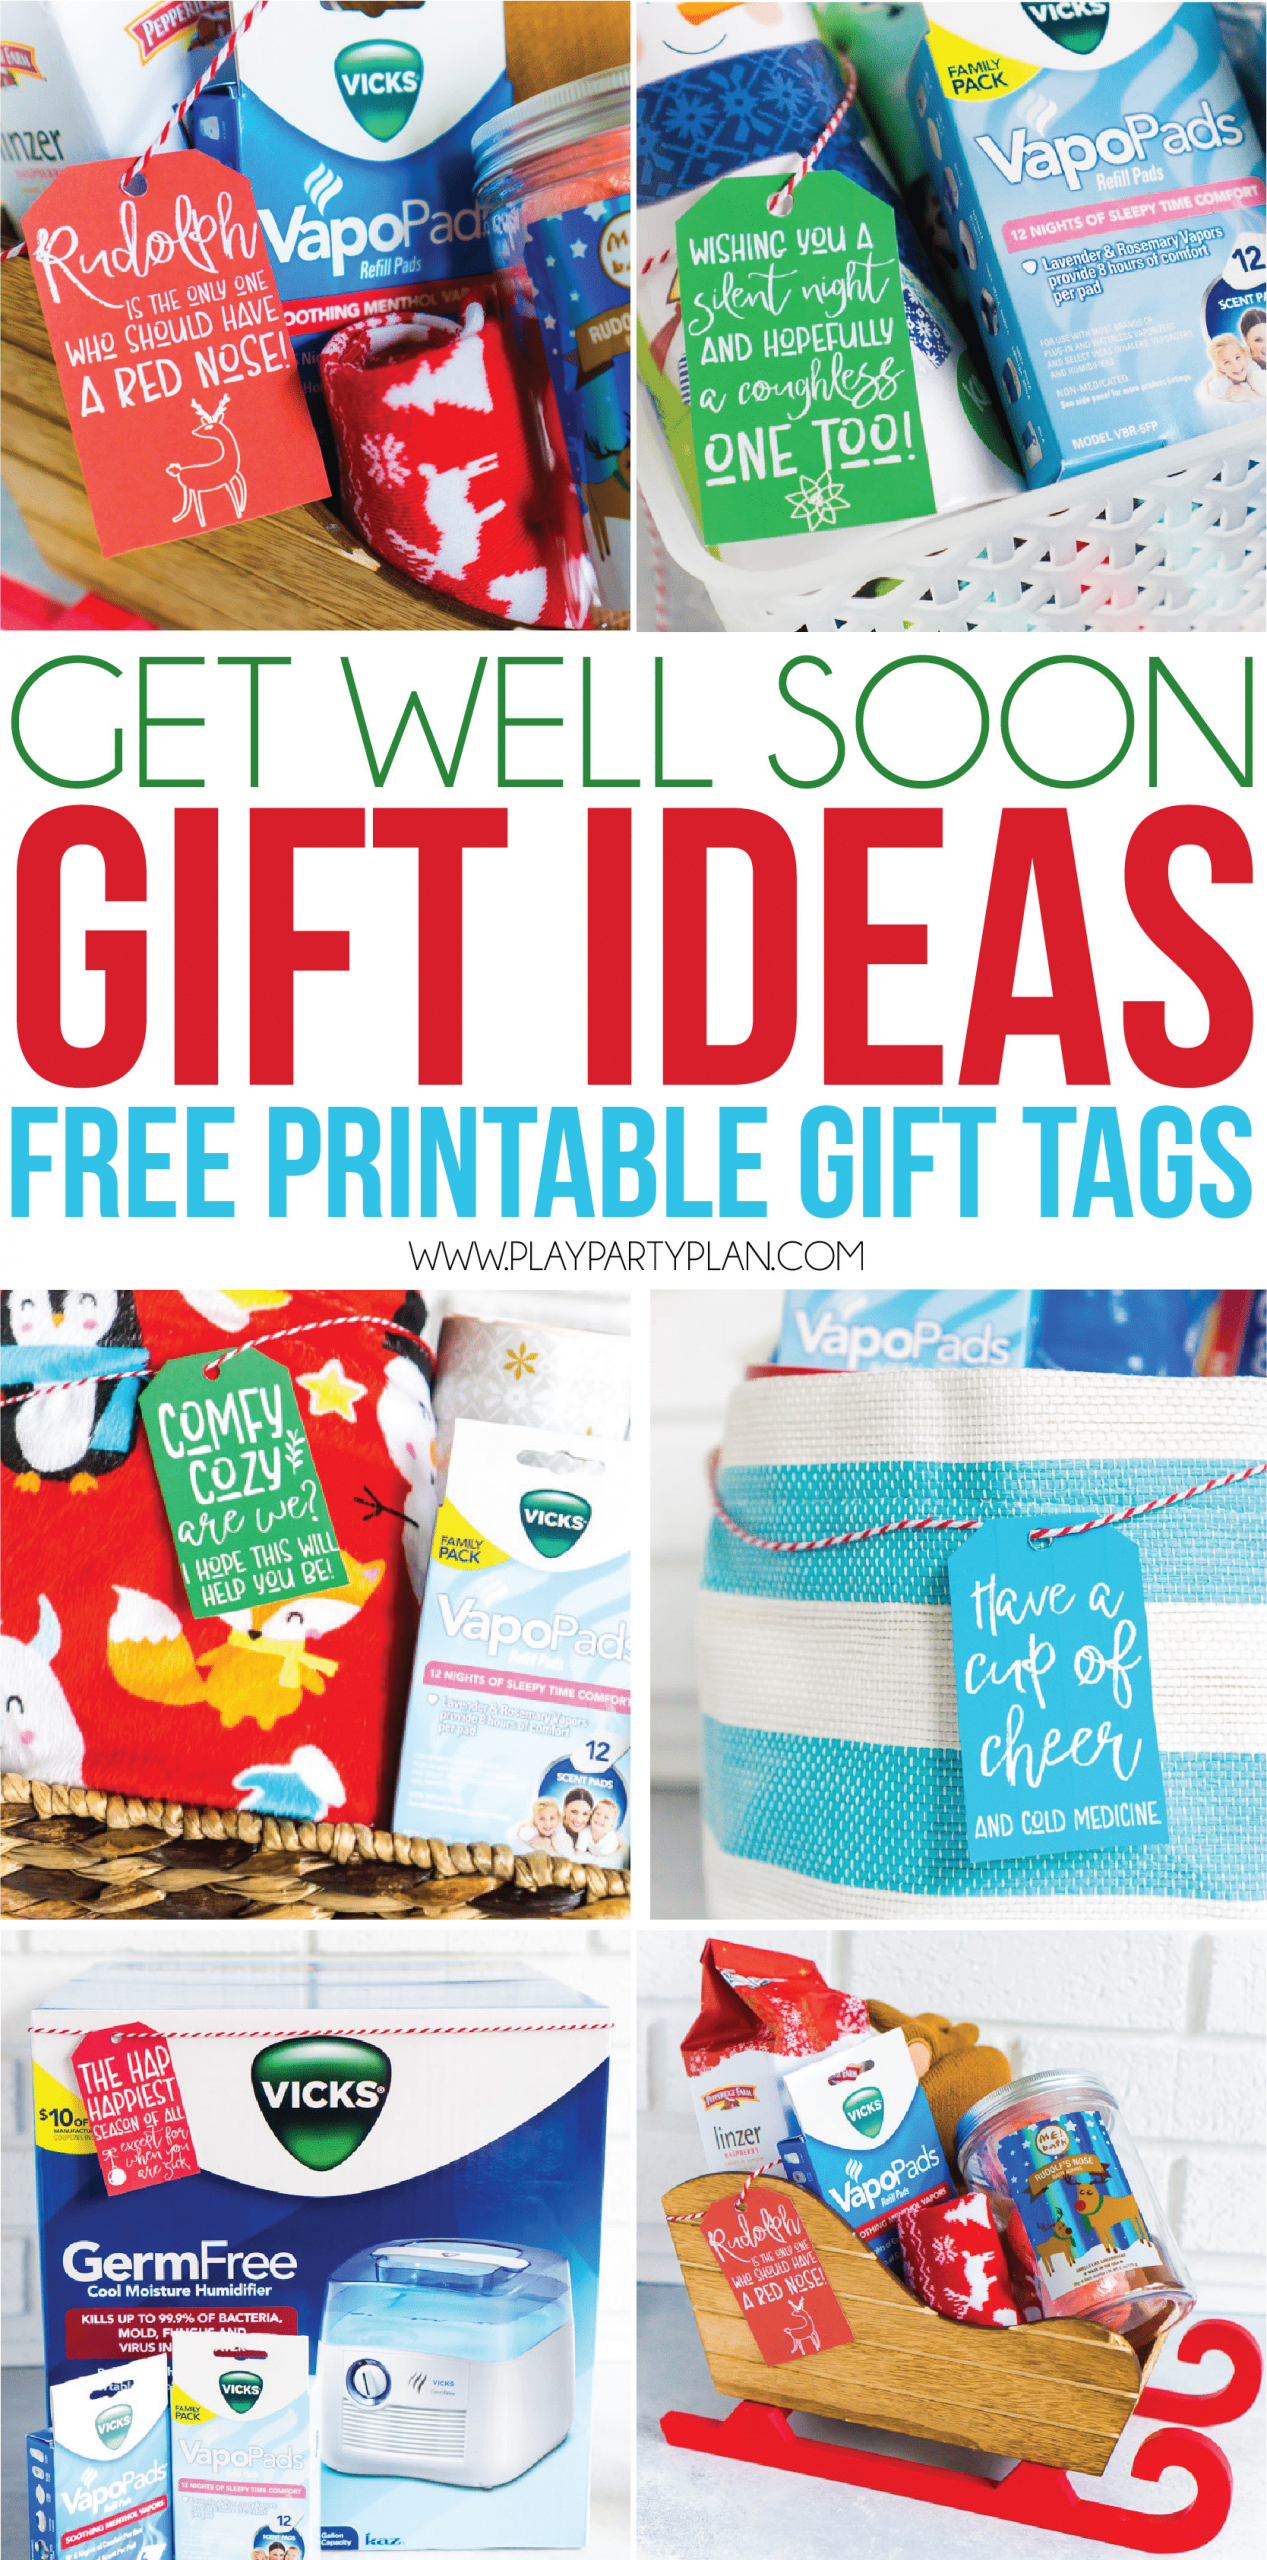 Get Well Soon Gifts For Kids  Funny Get Well Soon Gifts & Free Printable Cards Play